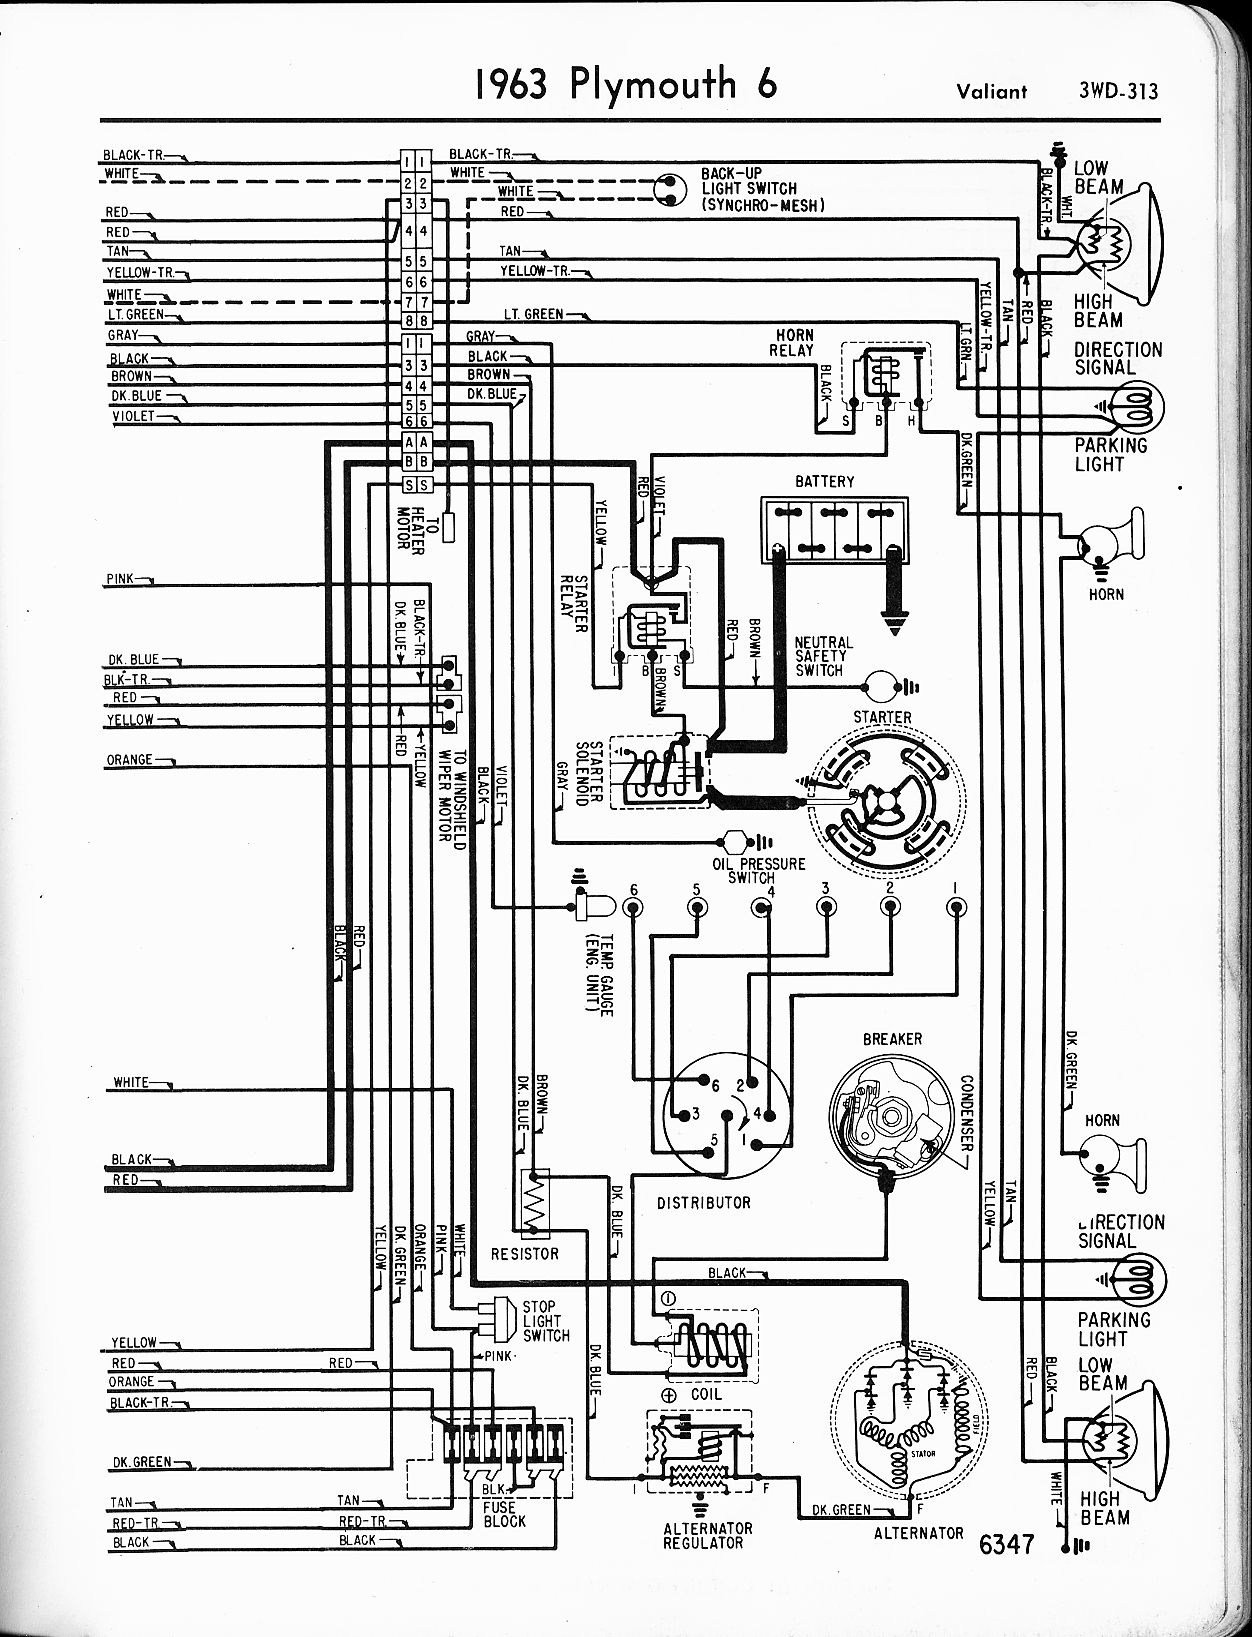 1956 chevrolet bel air wiring diagram